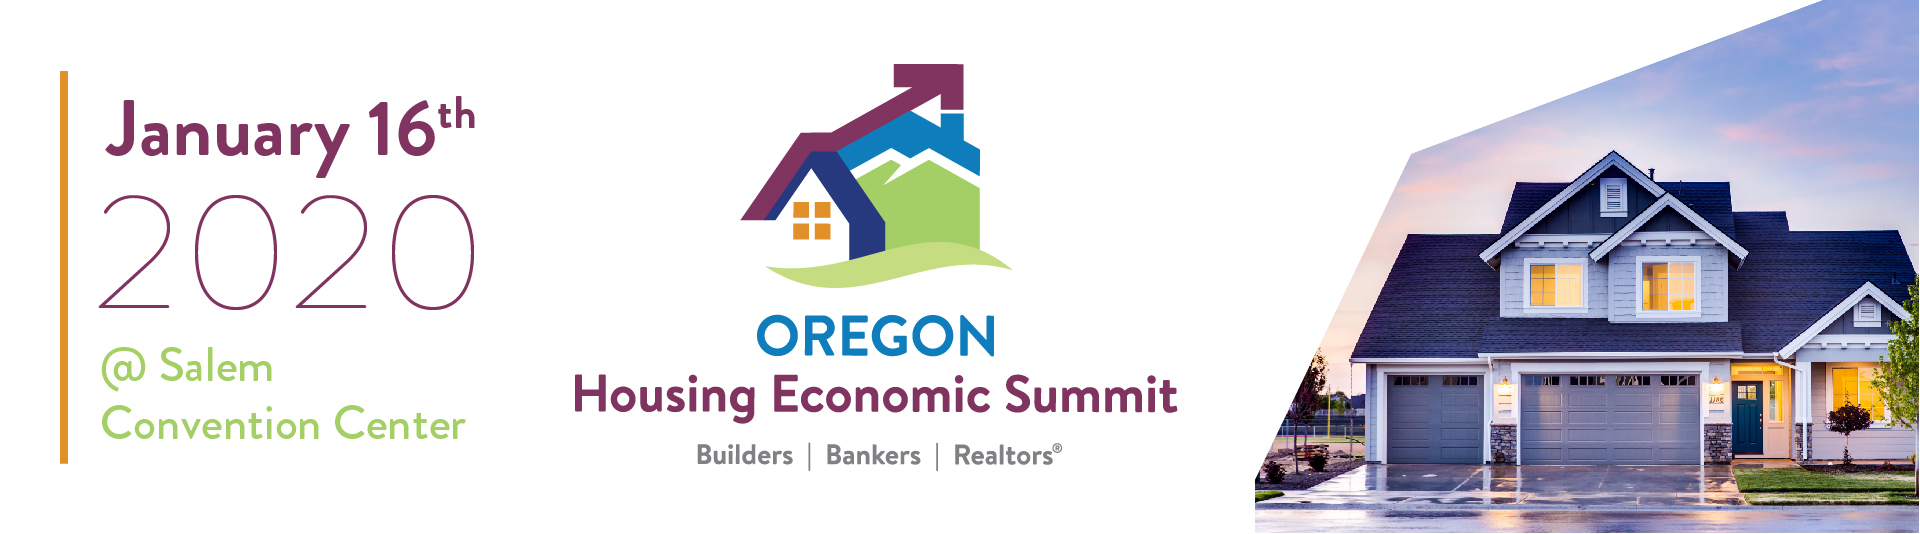 Oregon Housing Economic Summit Banner